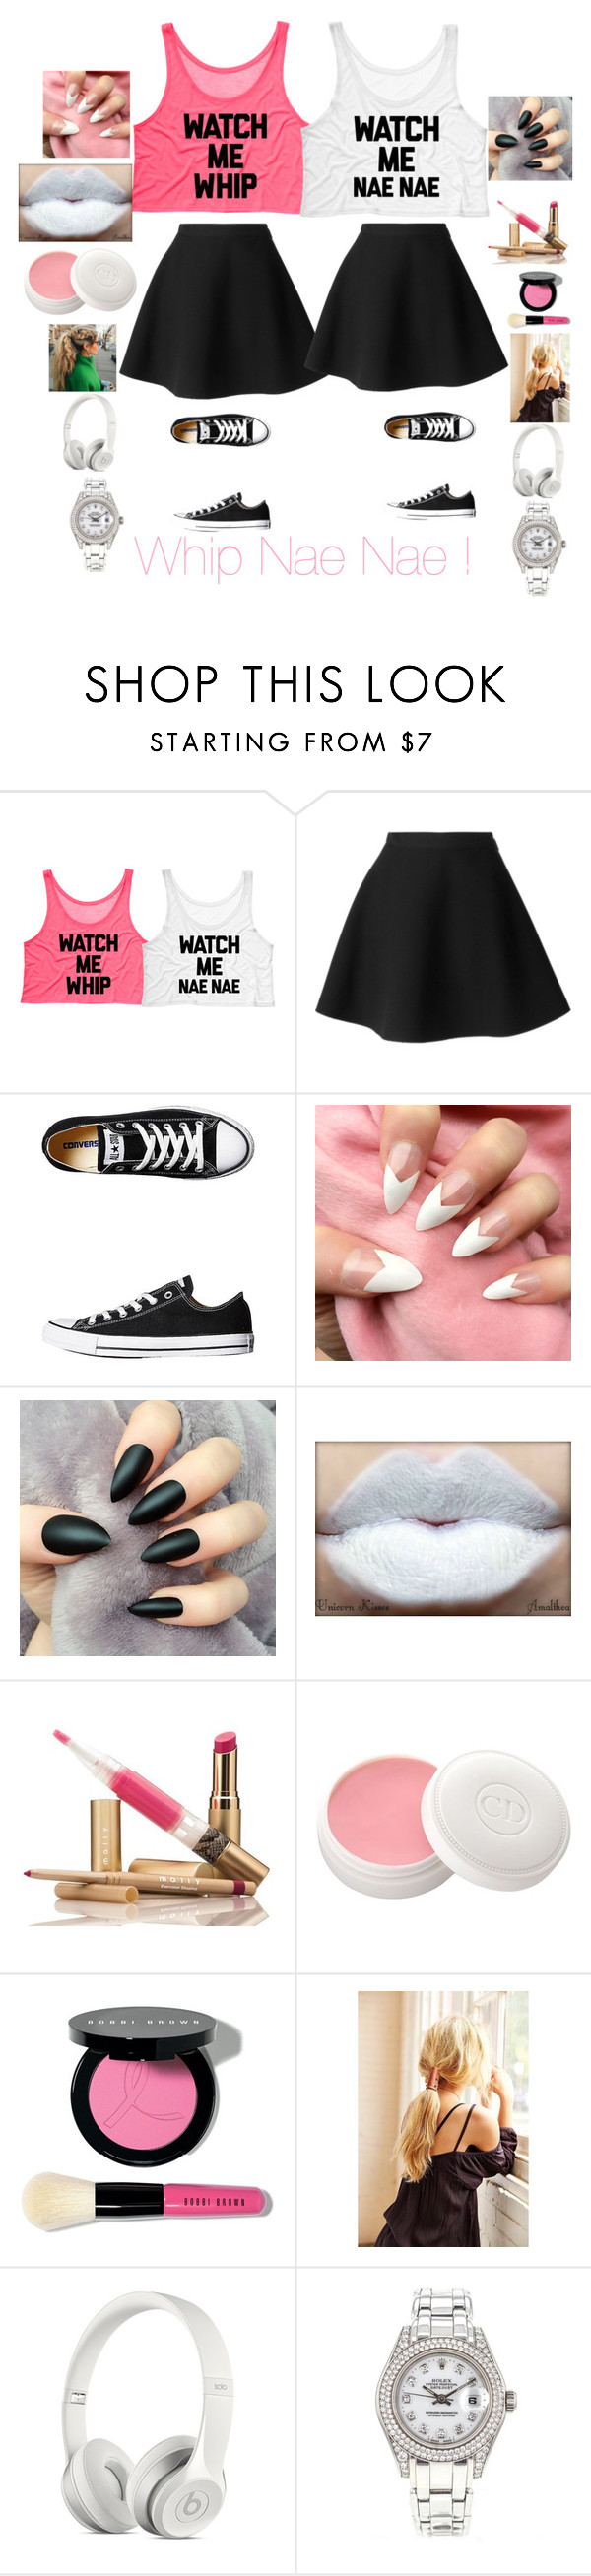 """Whip Nae Nae"" by algreen0330 ❤ liked on Polyvore featuring beauty, MSGM, Converse, Christian Dior, Bobbi Brown Cosmetics and Rolex"